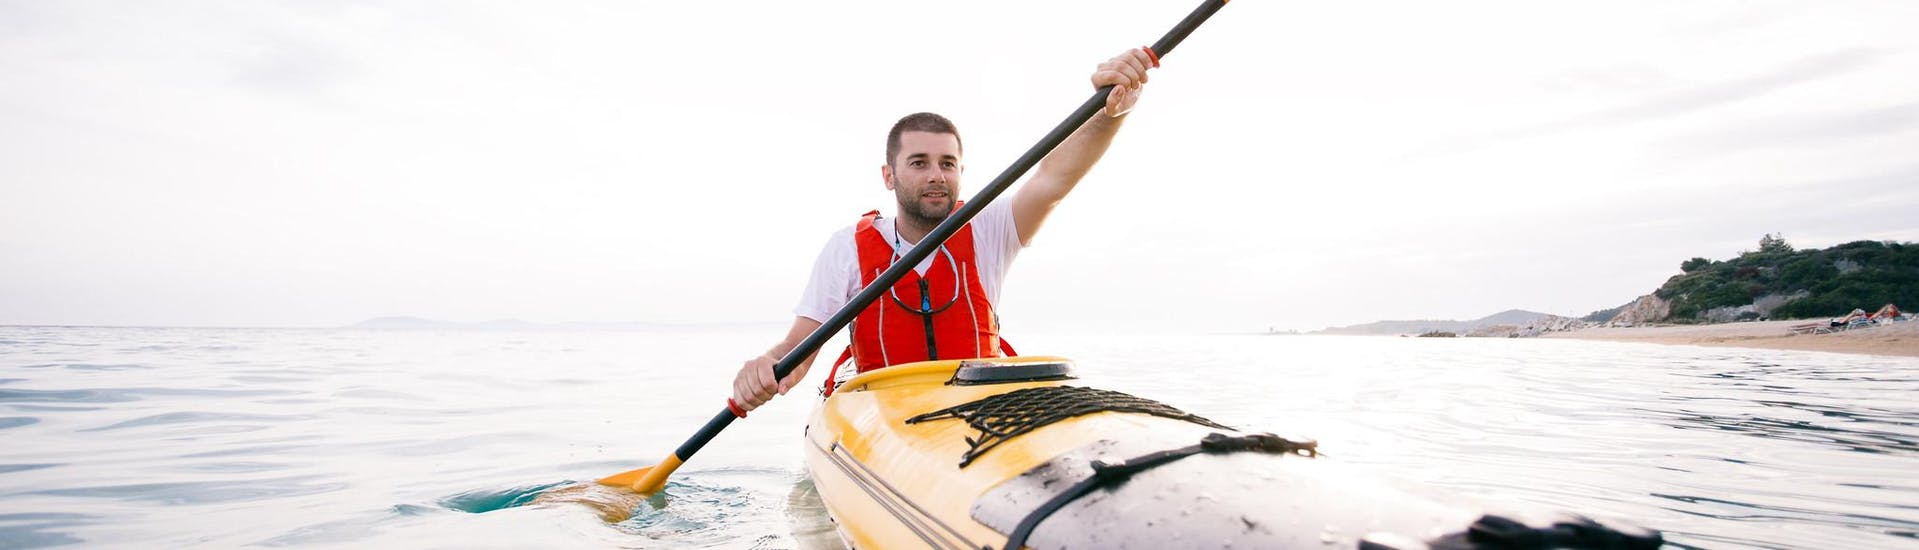 A person is paddling around and enjoying his day on the water with his kayak rental in Cullera from Anywhere Watersports.